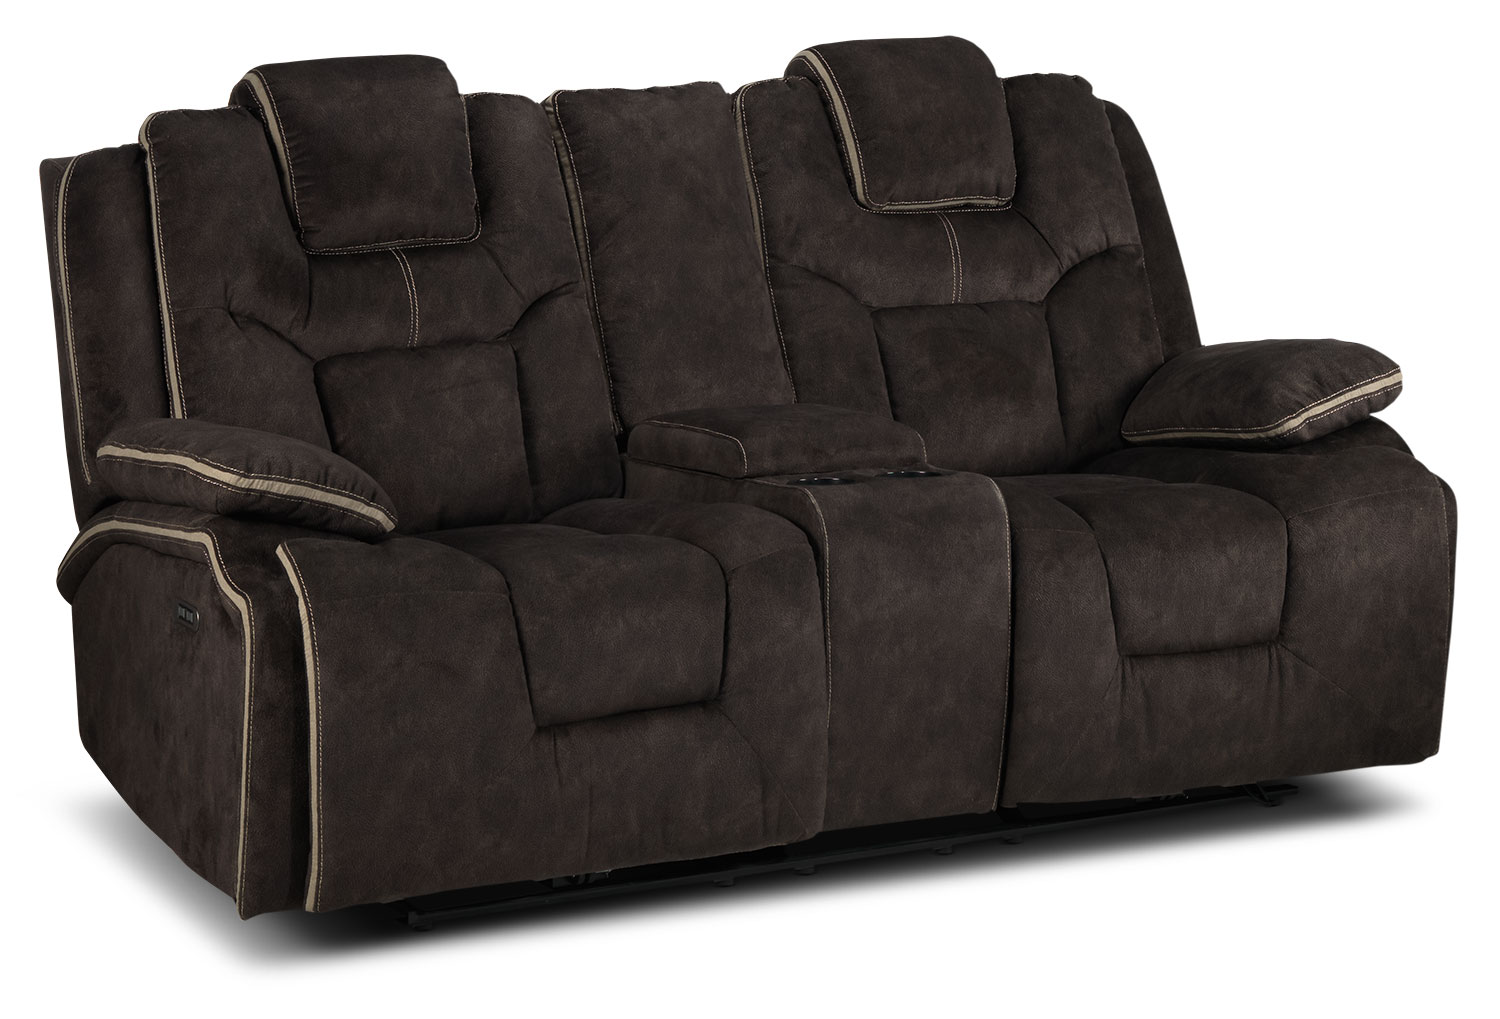 Sondra Power Reclining Loveseat - Deep Brown